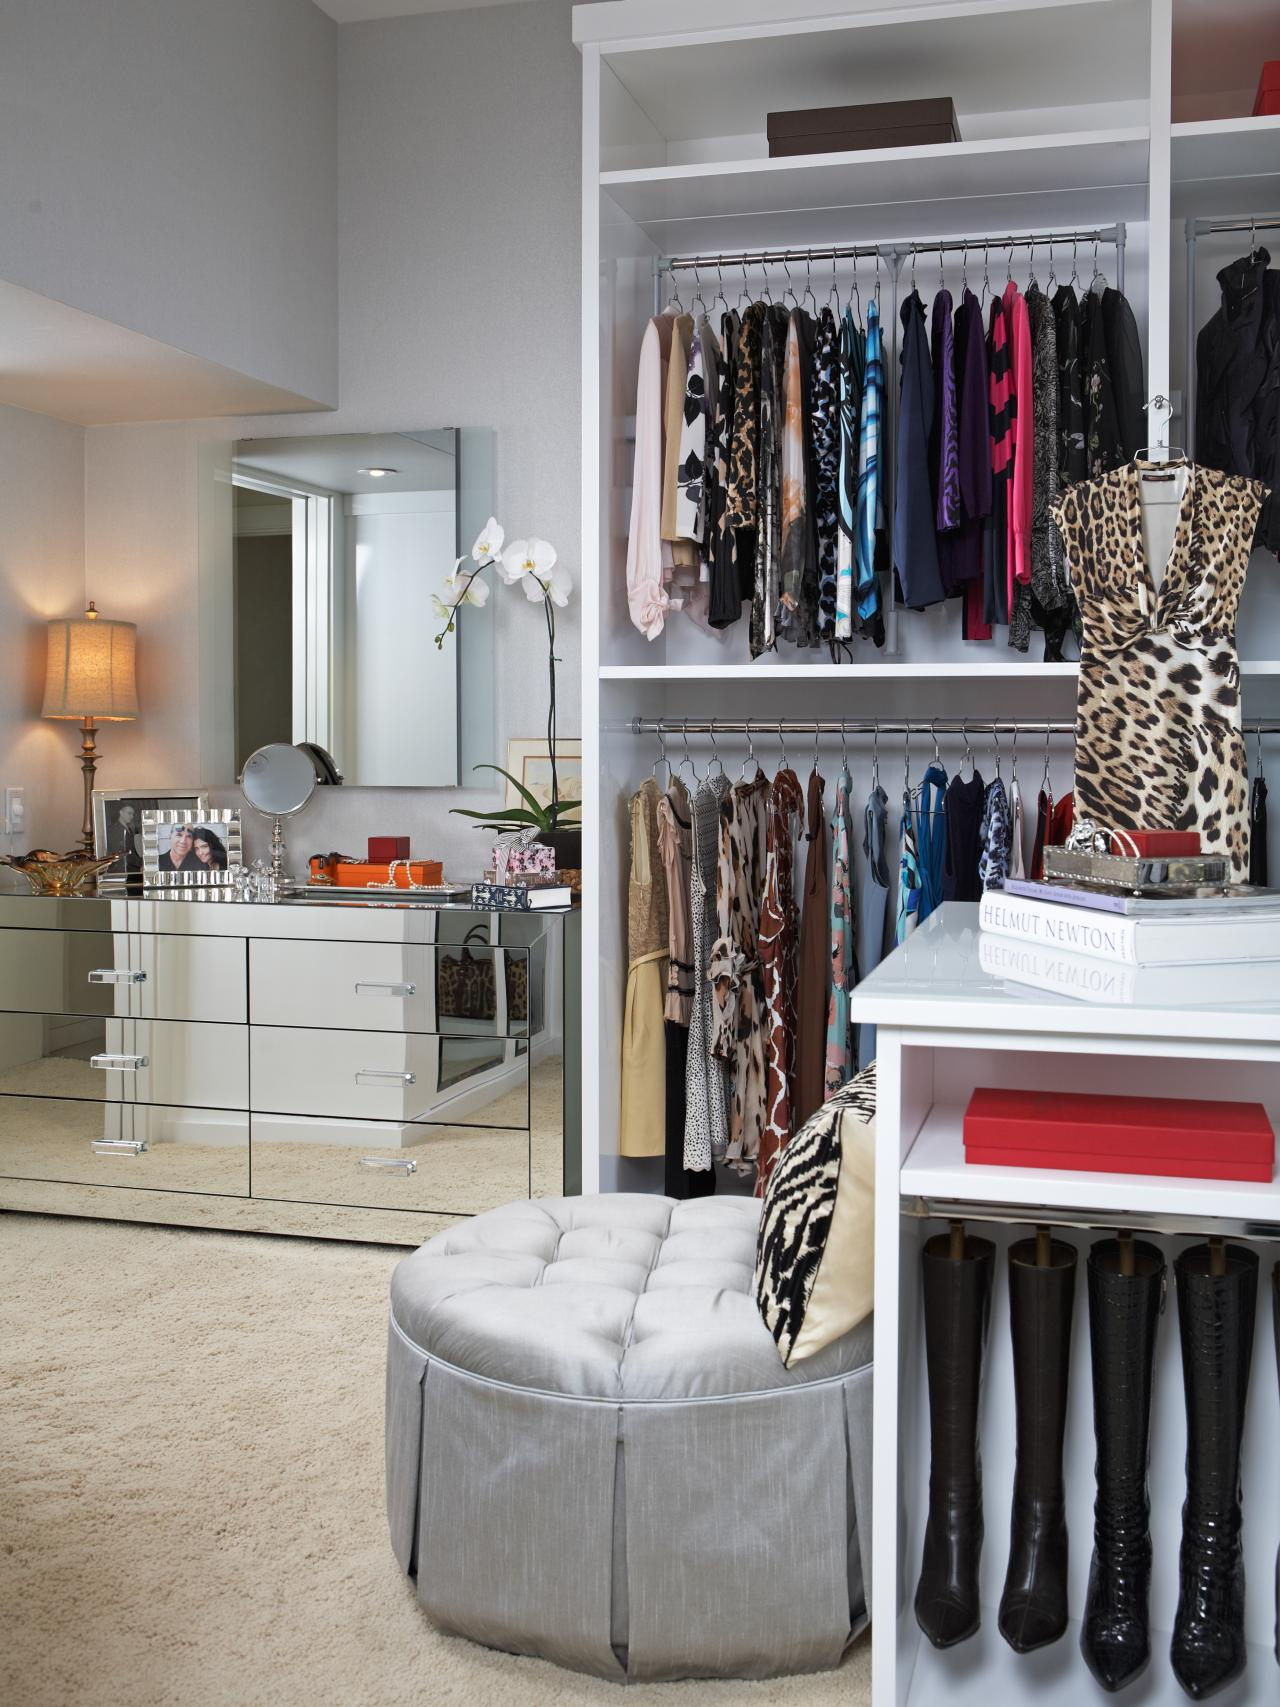 Closet Doors: Design Ideas And Options